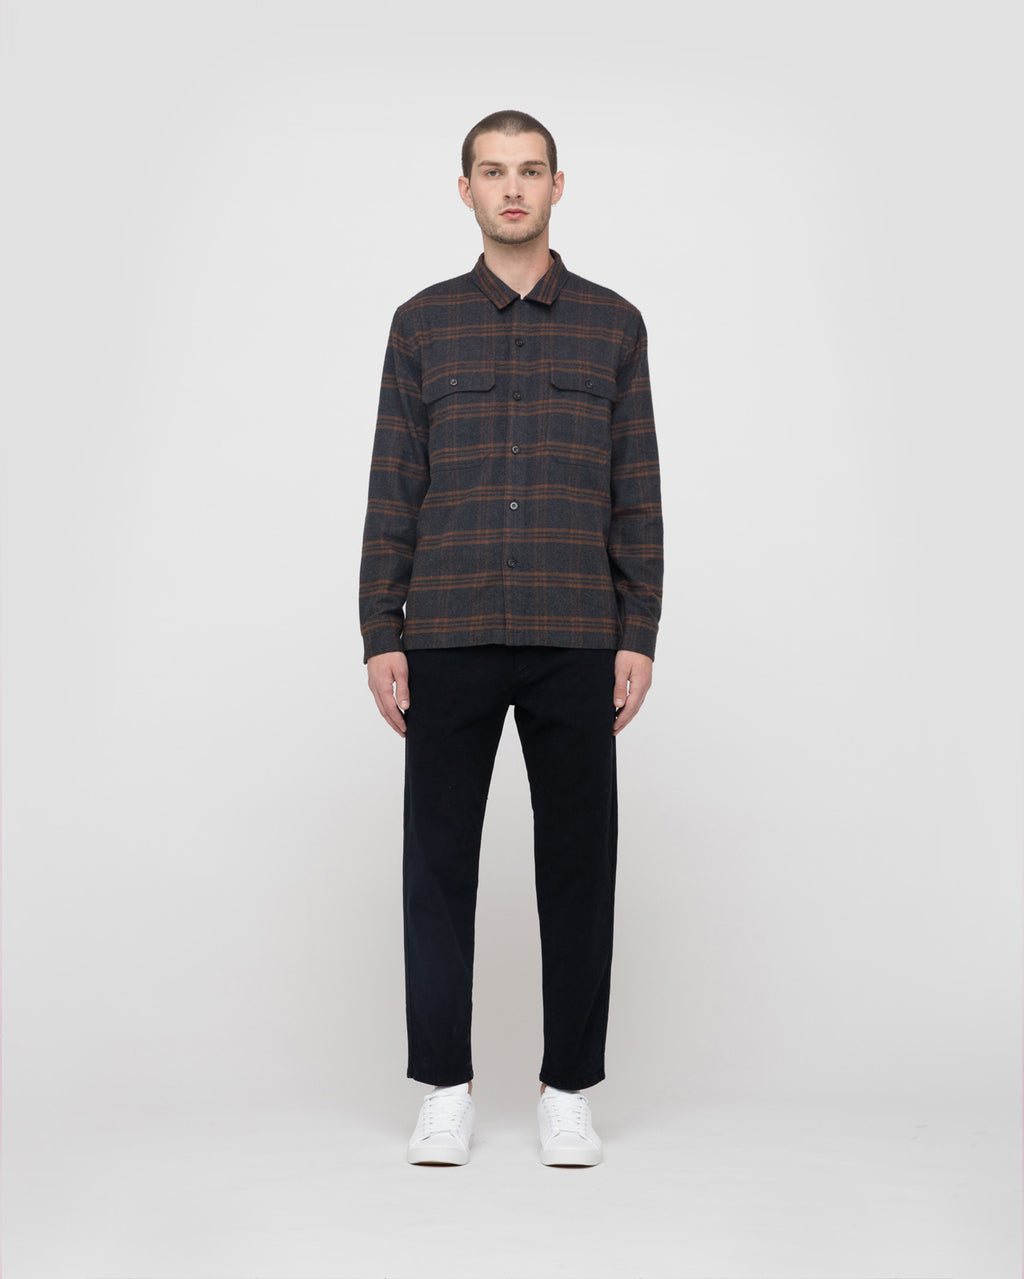 The Guetes Shirt in Rust Plaid